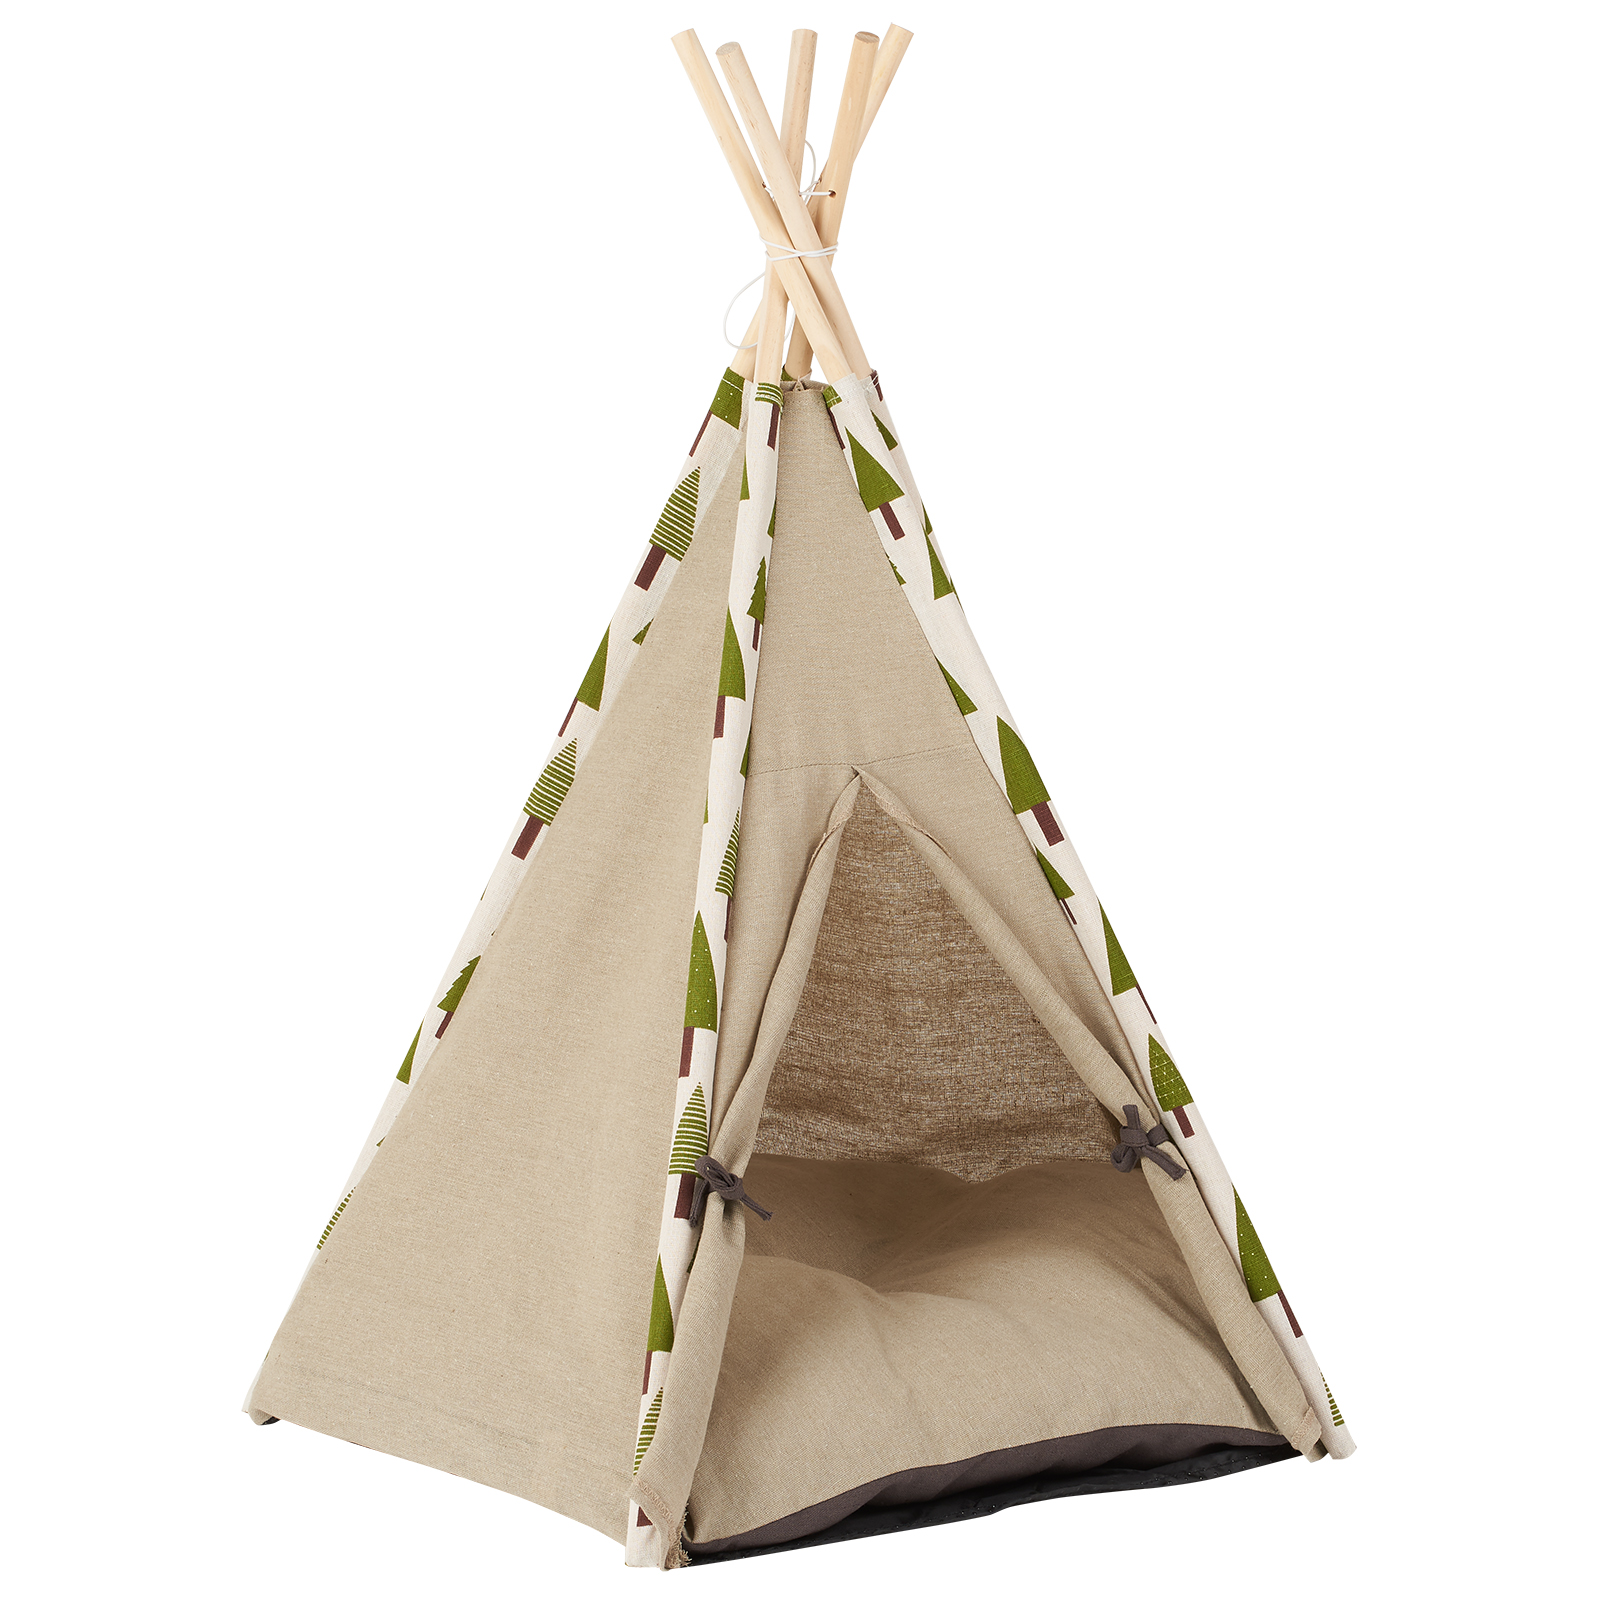 on sale 3bc4b 15876 Details about Me & My Pets Forest Print Teepee Bed Cat/Kitten/Dog/Puppy  Igloo Play Tent House